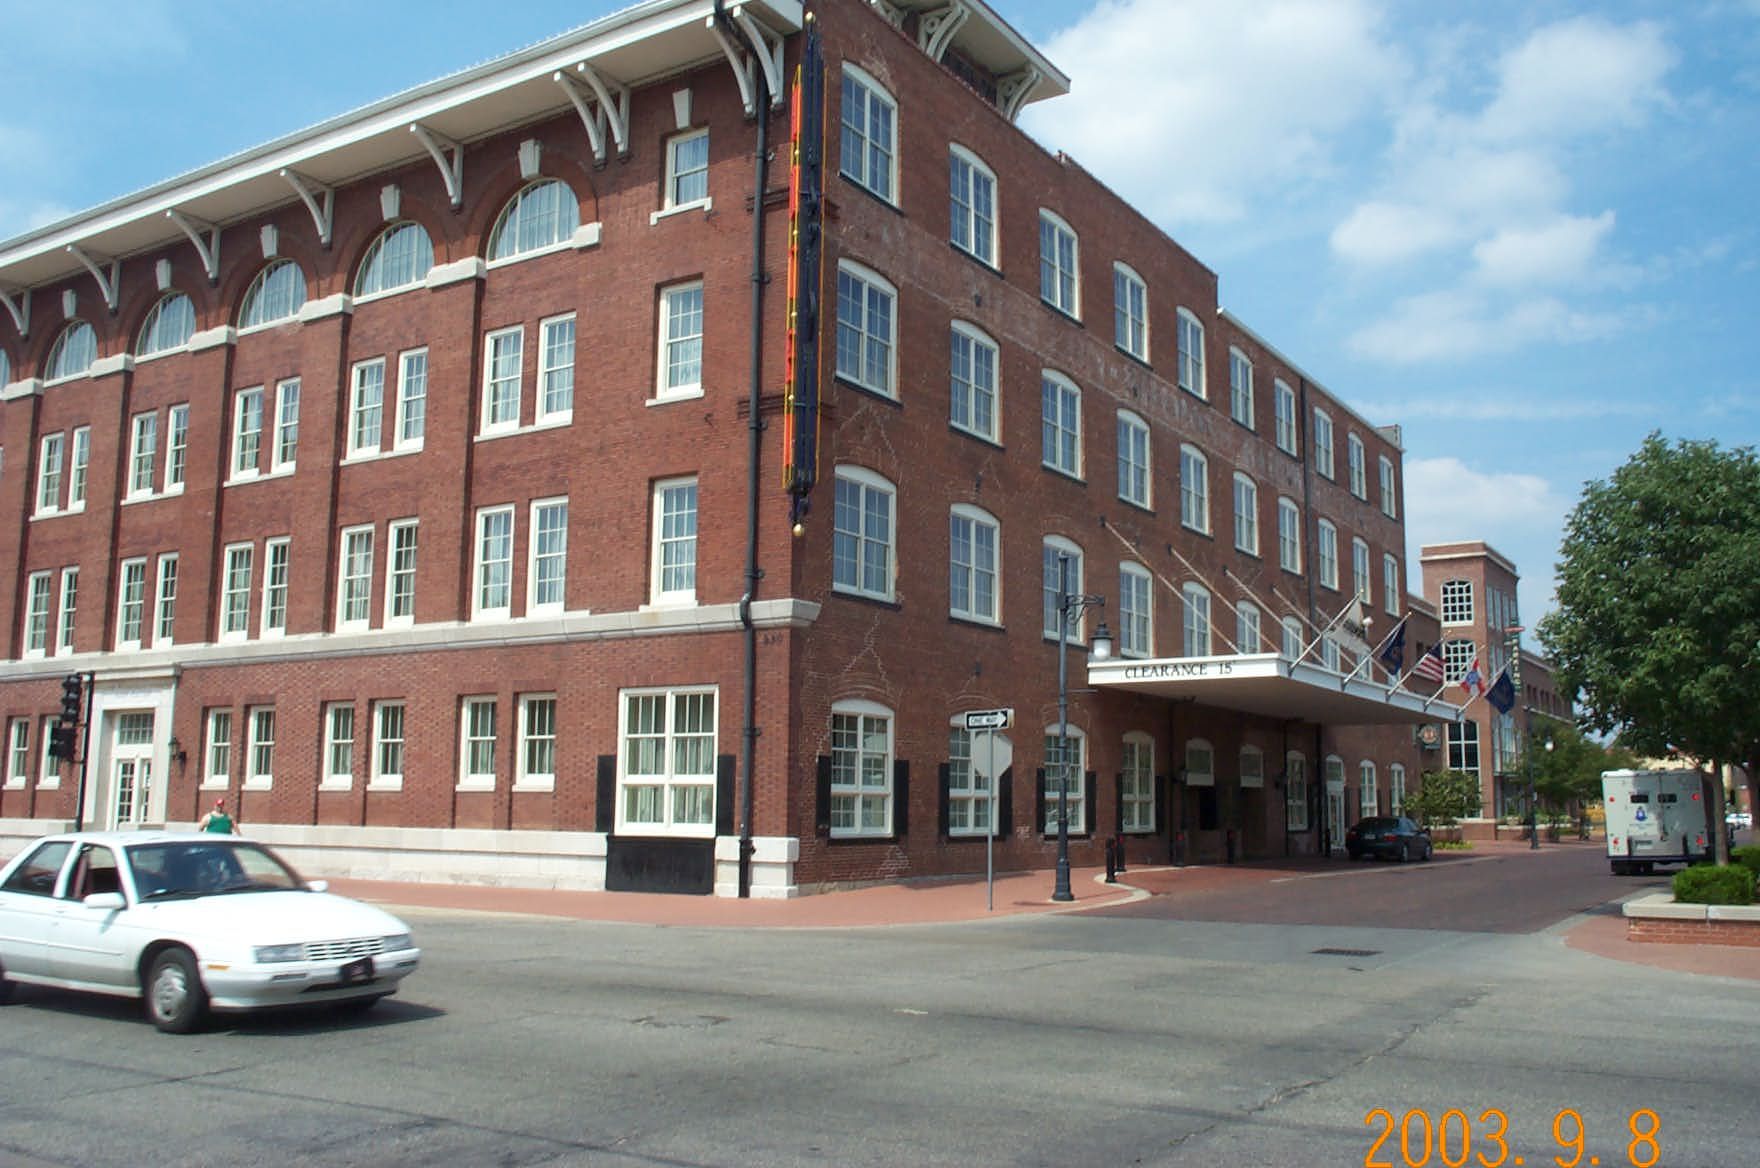 The Hotel at OldTown where we will all stay. Across the street in the banquet room will be our get together dinner on Tuesday